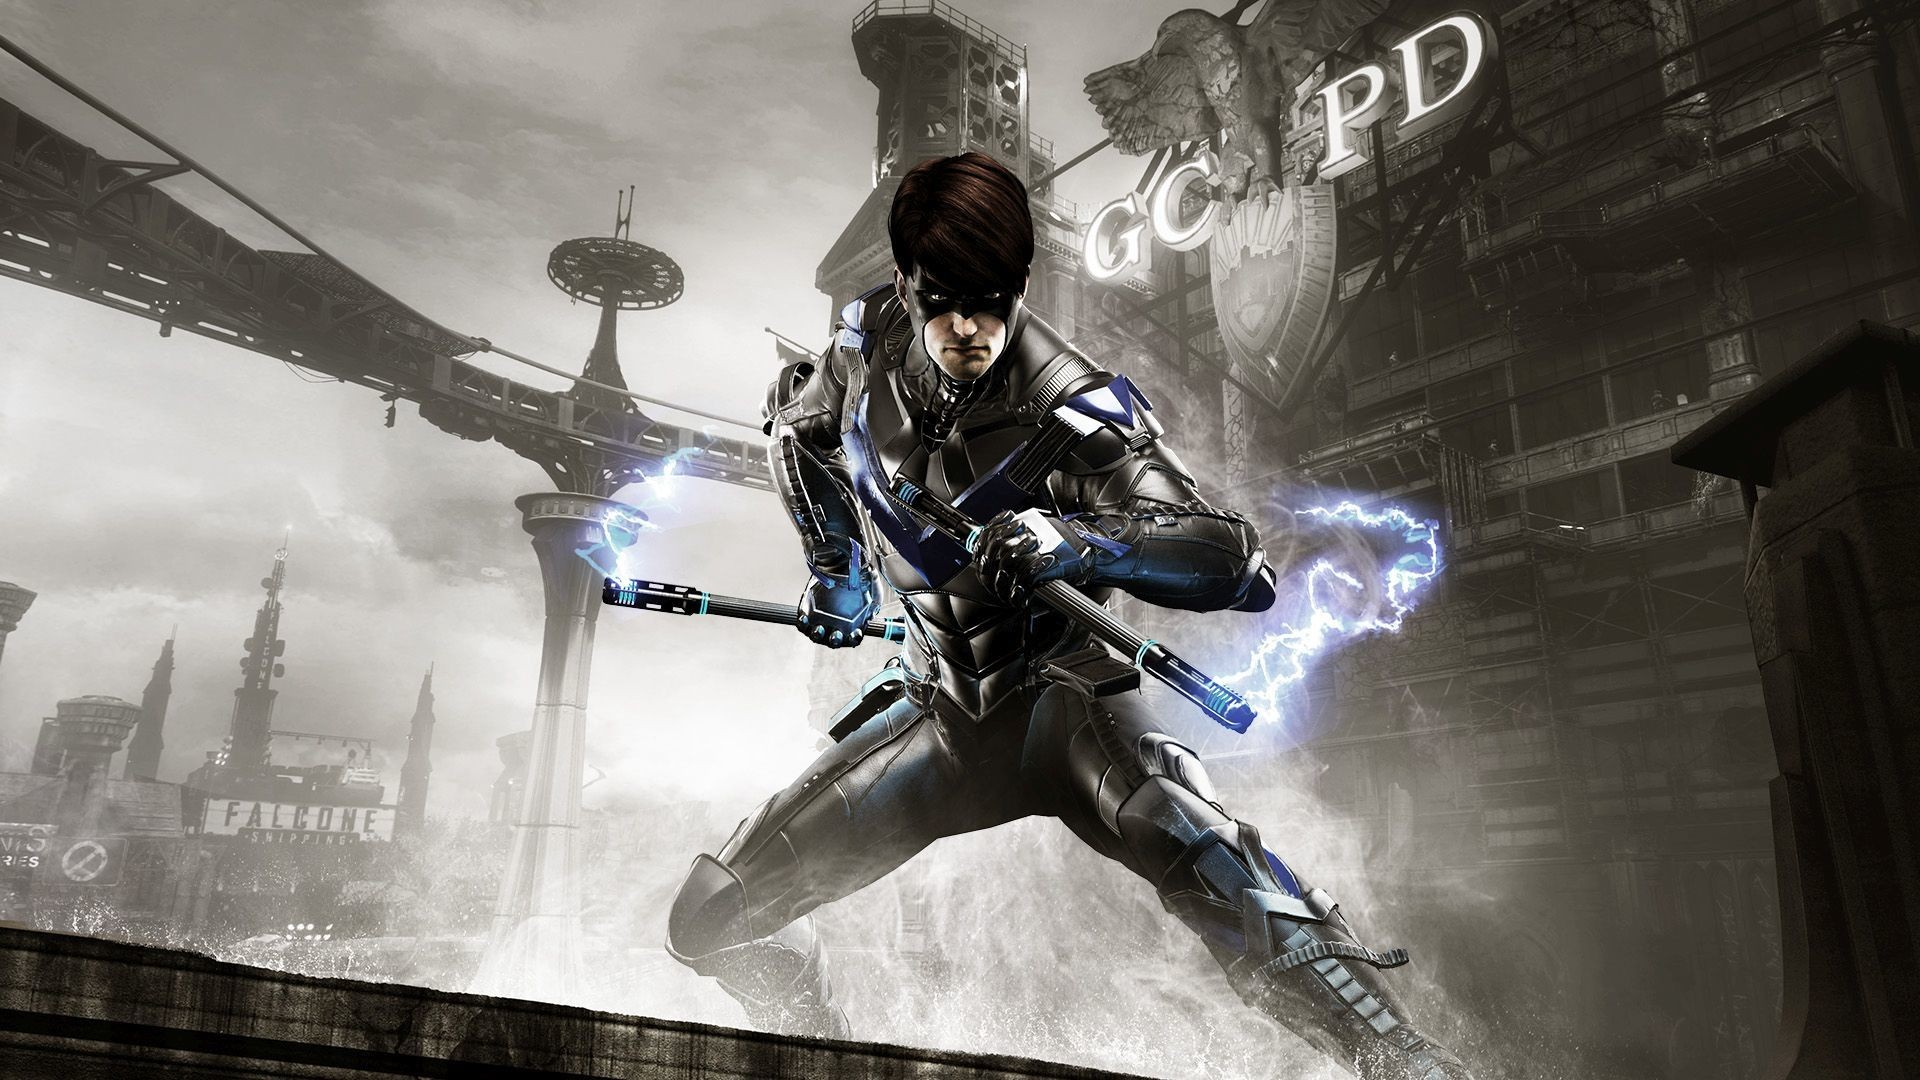 nightwing wallpaper images HD Wallpapers Buzz 1920x1080